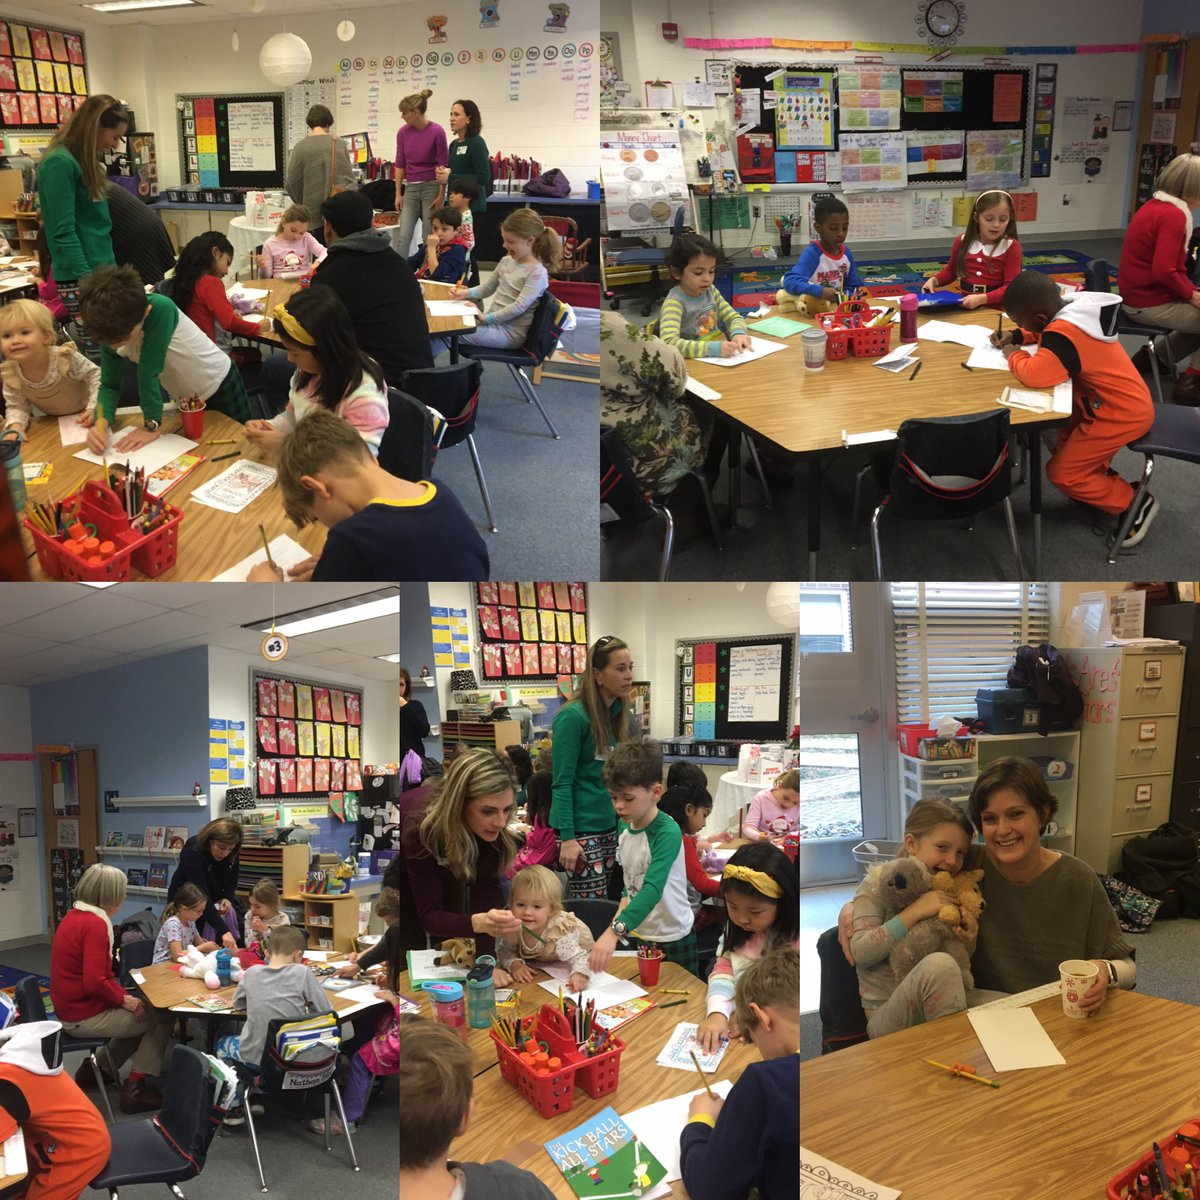 Ms. Are's learners and parents gathering😀<a target='_blank' href='http://twitter.com/GlebeAPS'>@GlebeAPS</a><a target='_blank' href='http://twitter.com/MsAreFirst'>@MsAreFirst</a><a target='_blank' href='http://twitter.com/Glebe1st'>@Glebe1st</a> <a target='_blank' href='https://t.co/YvGYQFfSyH'>https://t.co/YvGYQFfSyH</a>